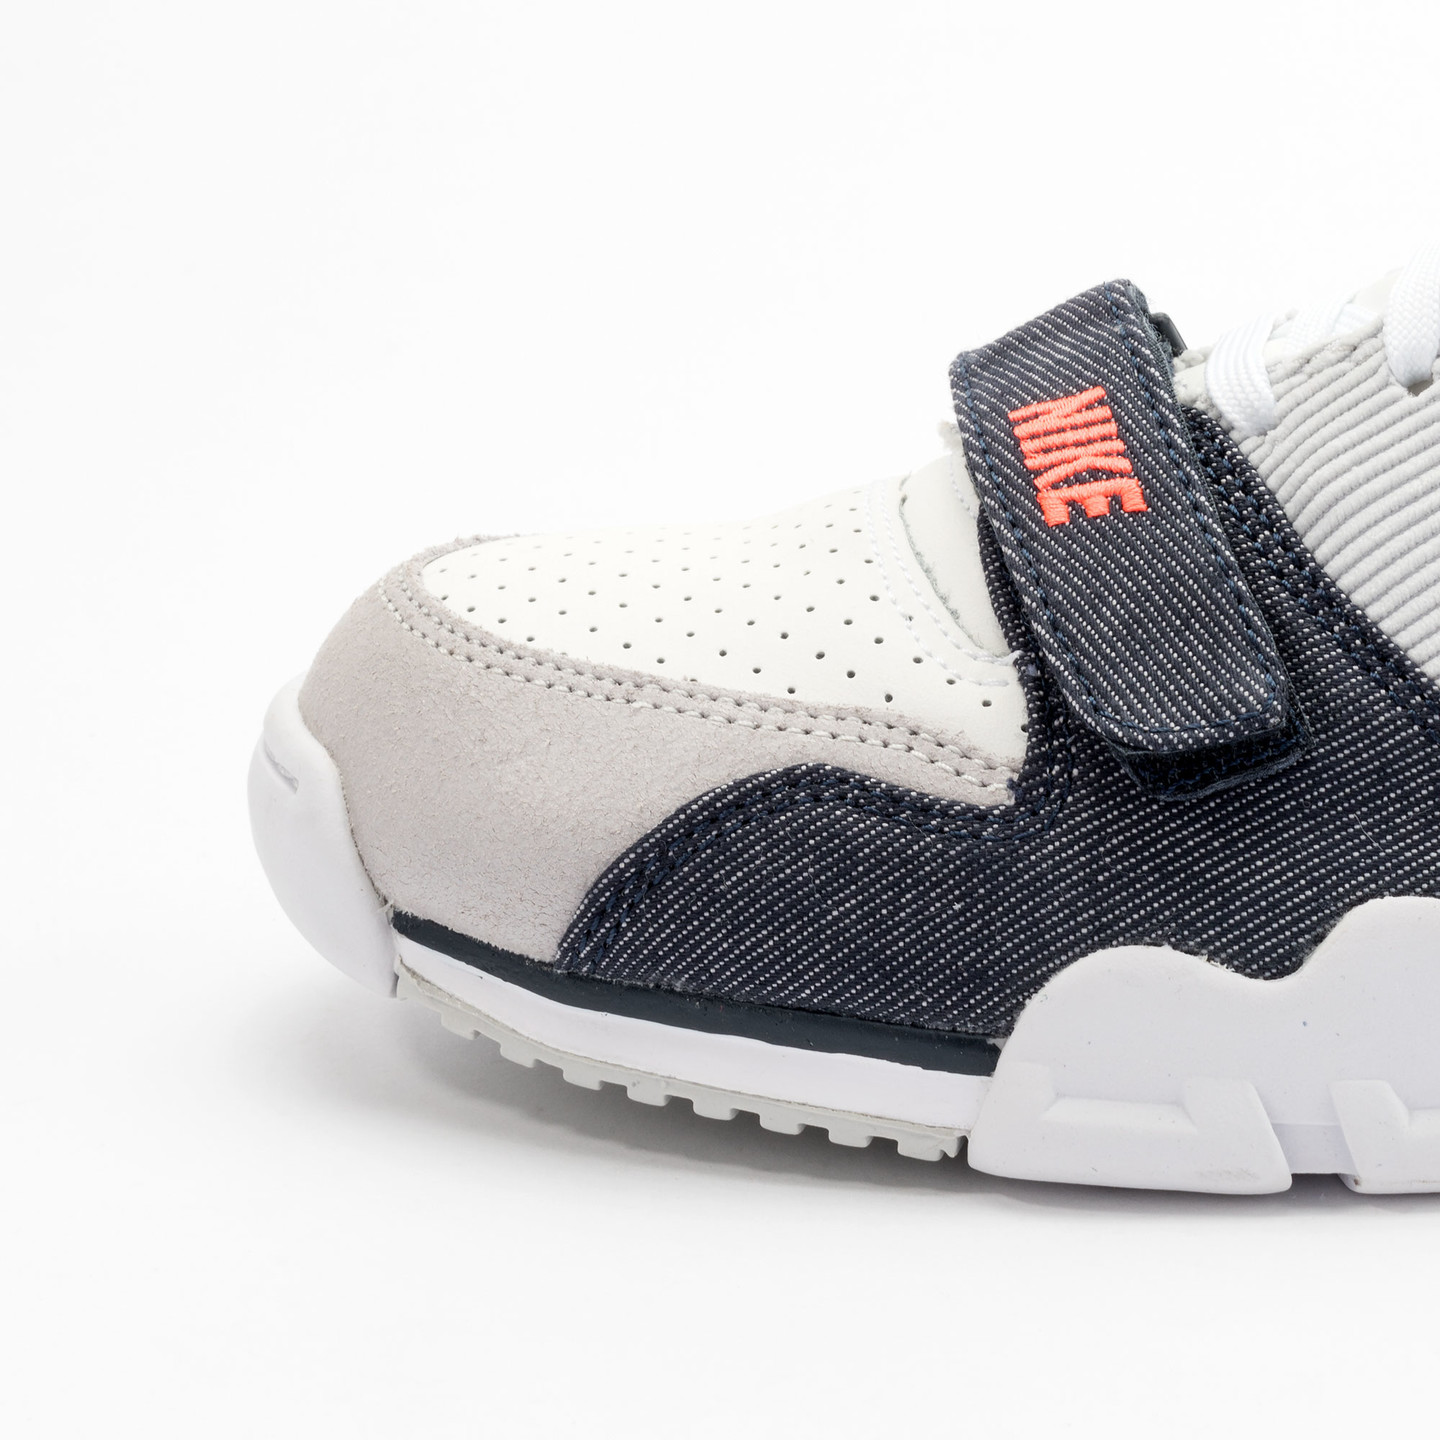 Nike Air Trainer 1 Mid White / Obsidian / Pure Platinum 317554-103-44